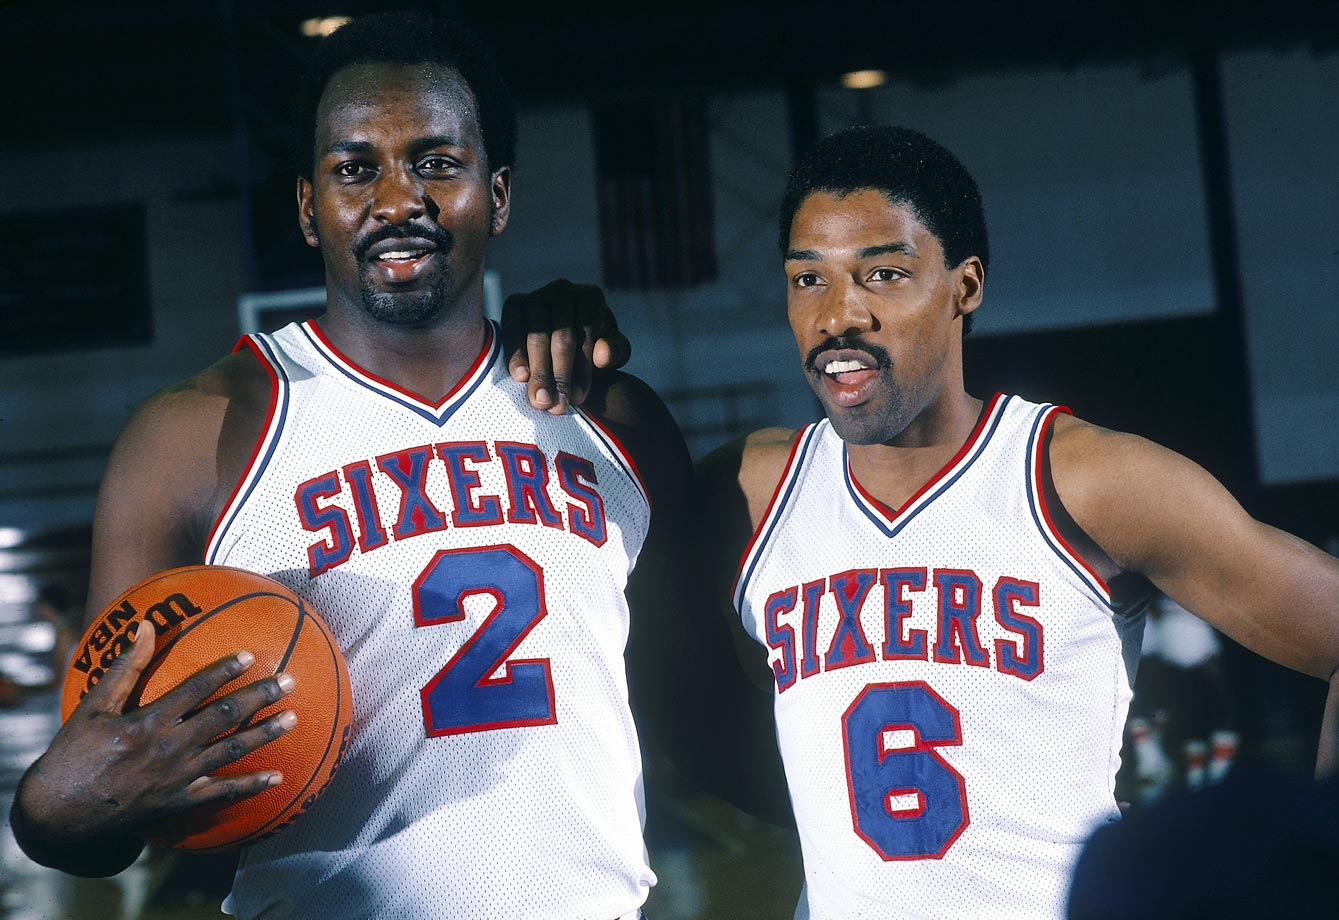 The duo of Dr. J and Moses Malone won the Sixers a championship in the 1982-83 season.